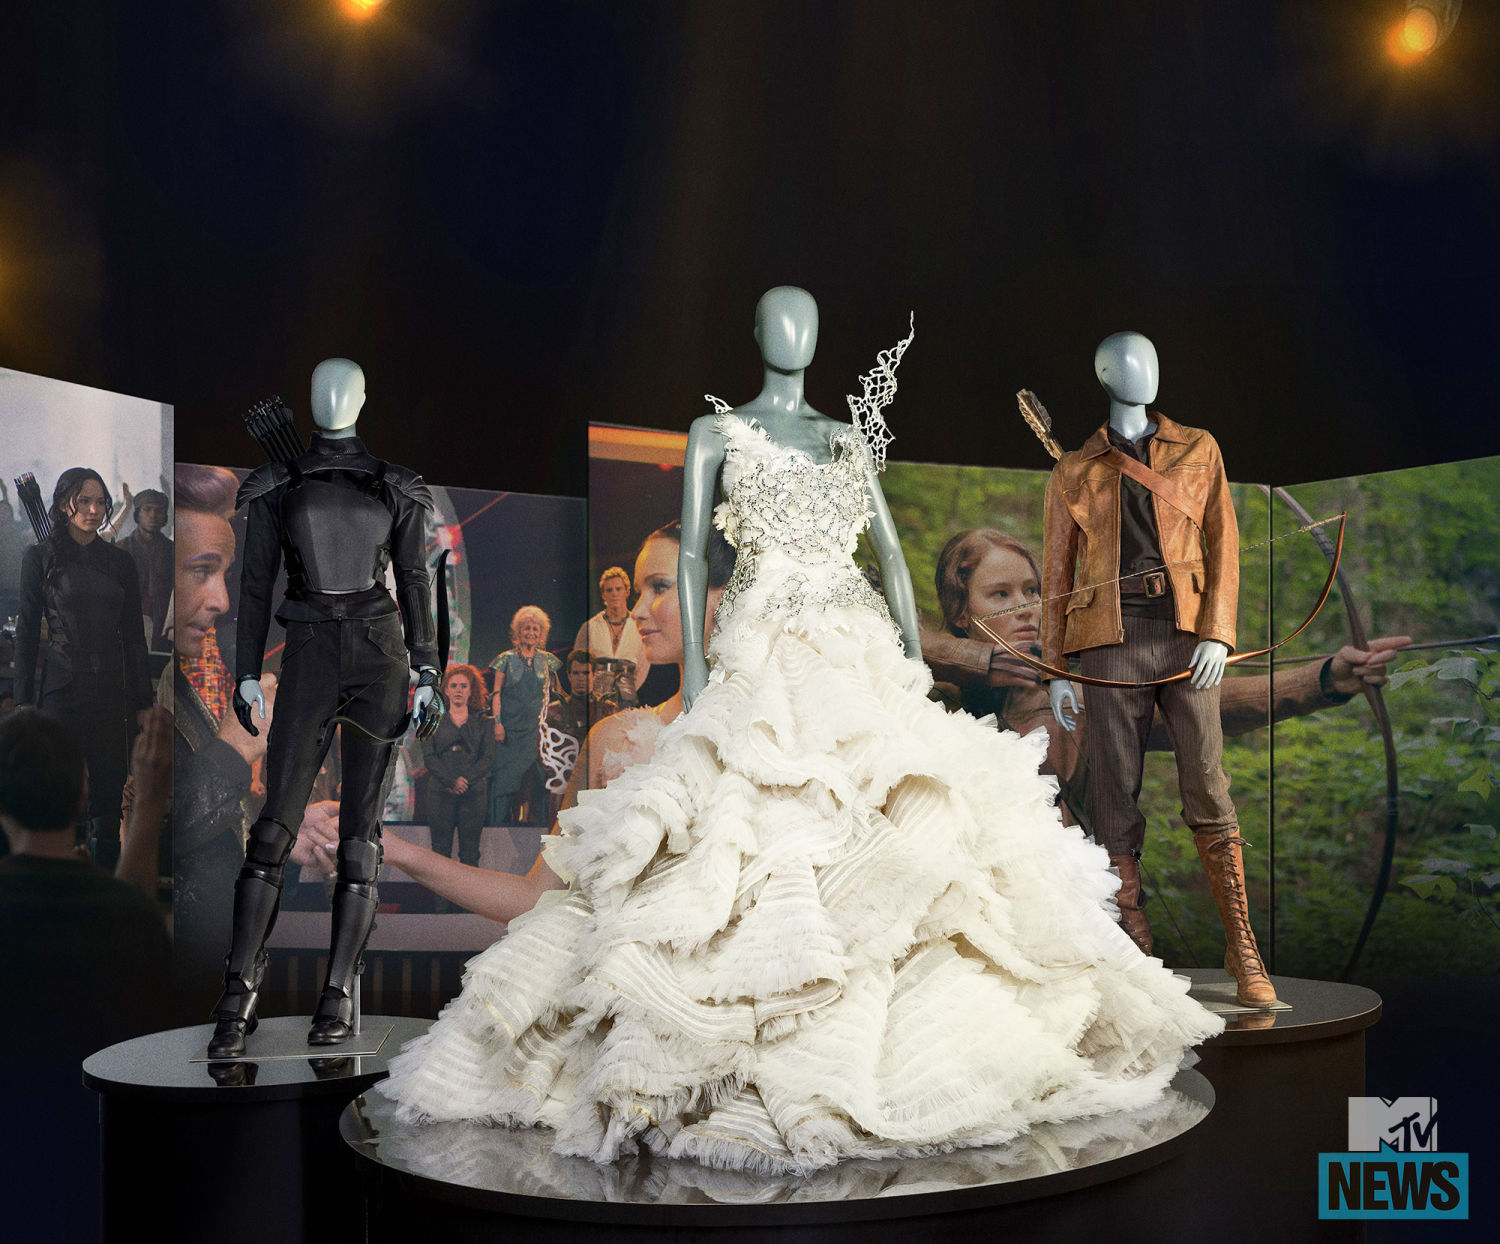 ... image from the u0027Katnissu0027s Journeyu0027 area which features the 3 iconic outfits worn by Katniss - the hunting outfit the wedding dress from Catching Fire ...  sc 1 st  Quarter Quell & New Image from u0027Katnissu0027s Journeyu0027 At The Hunger Games Exhibition ...